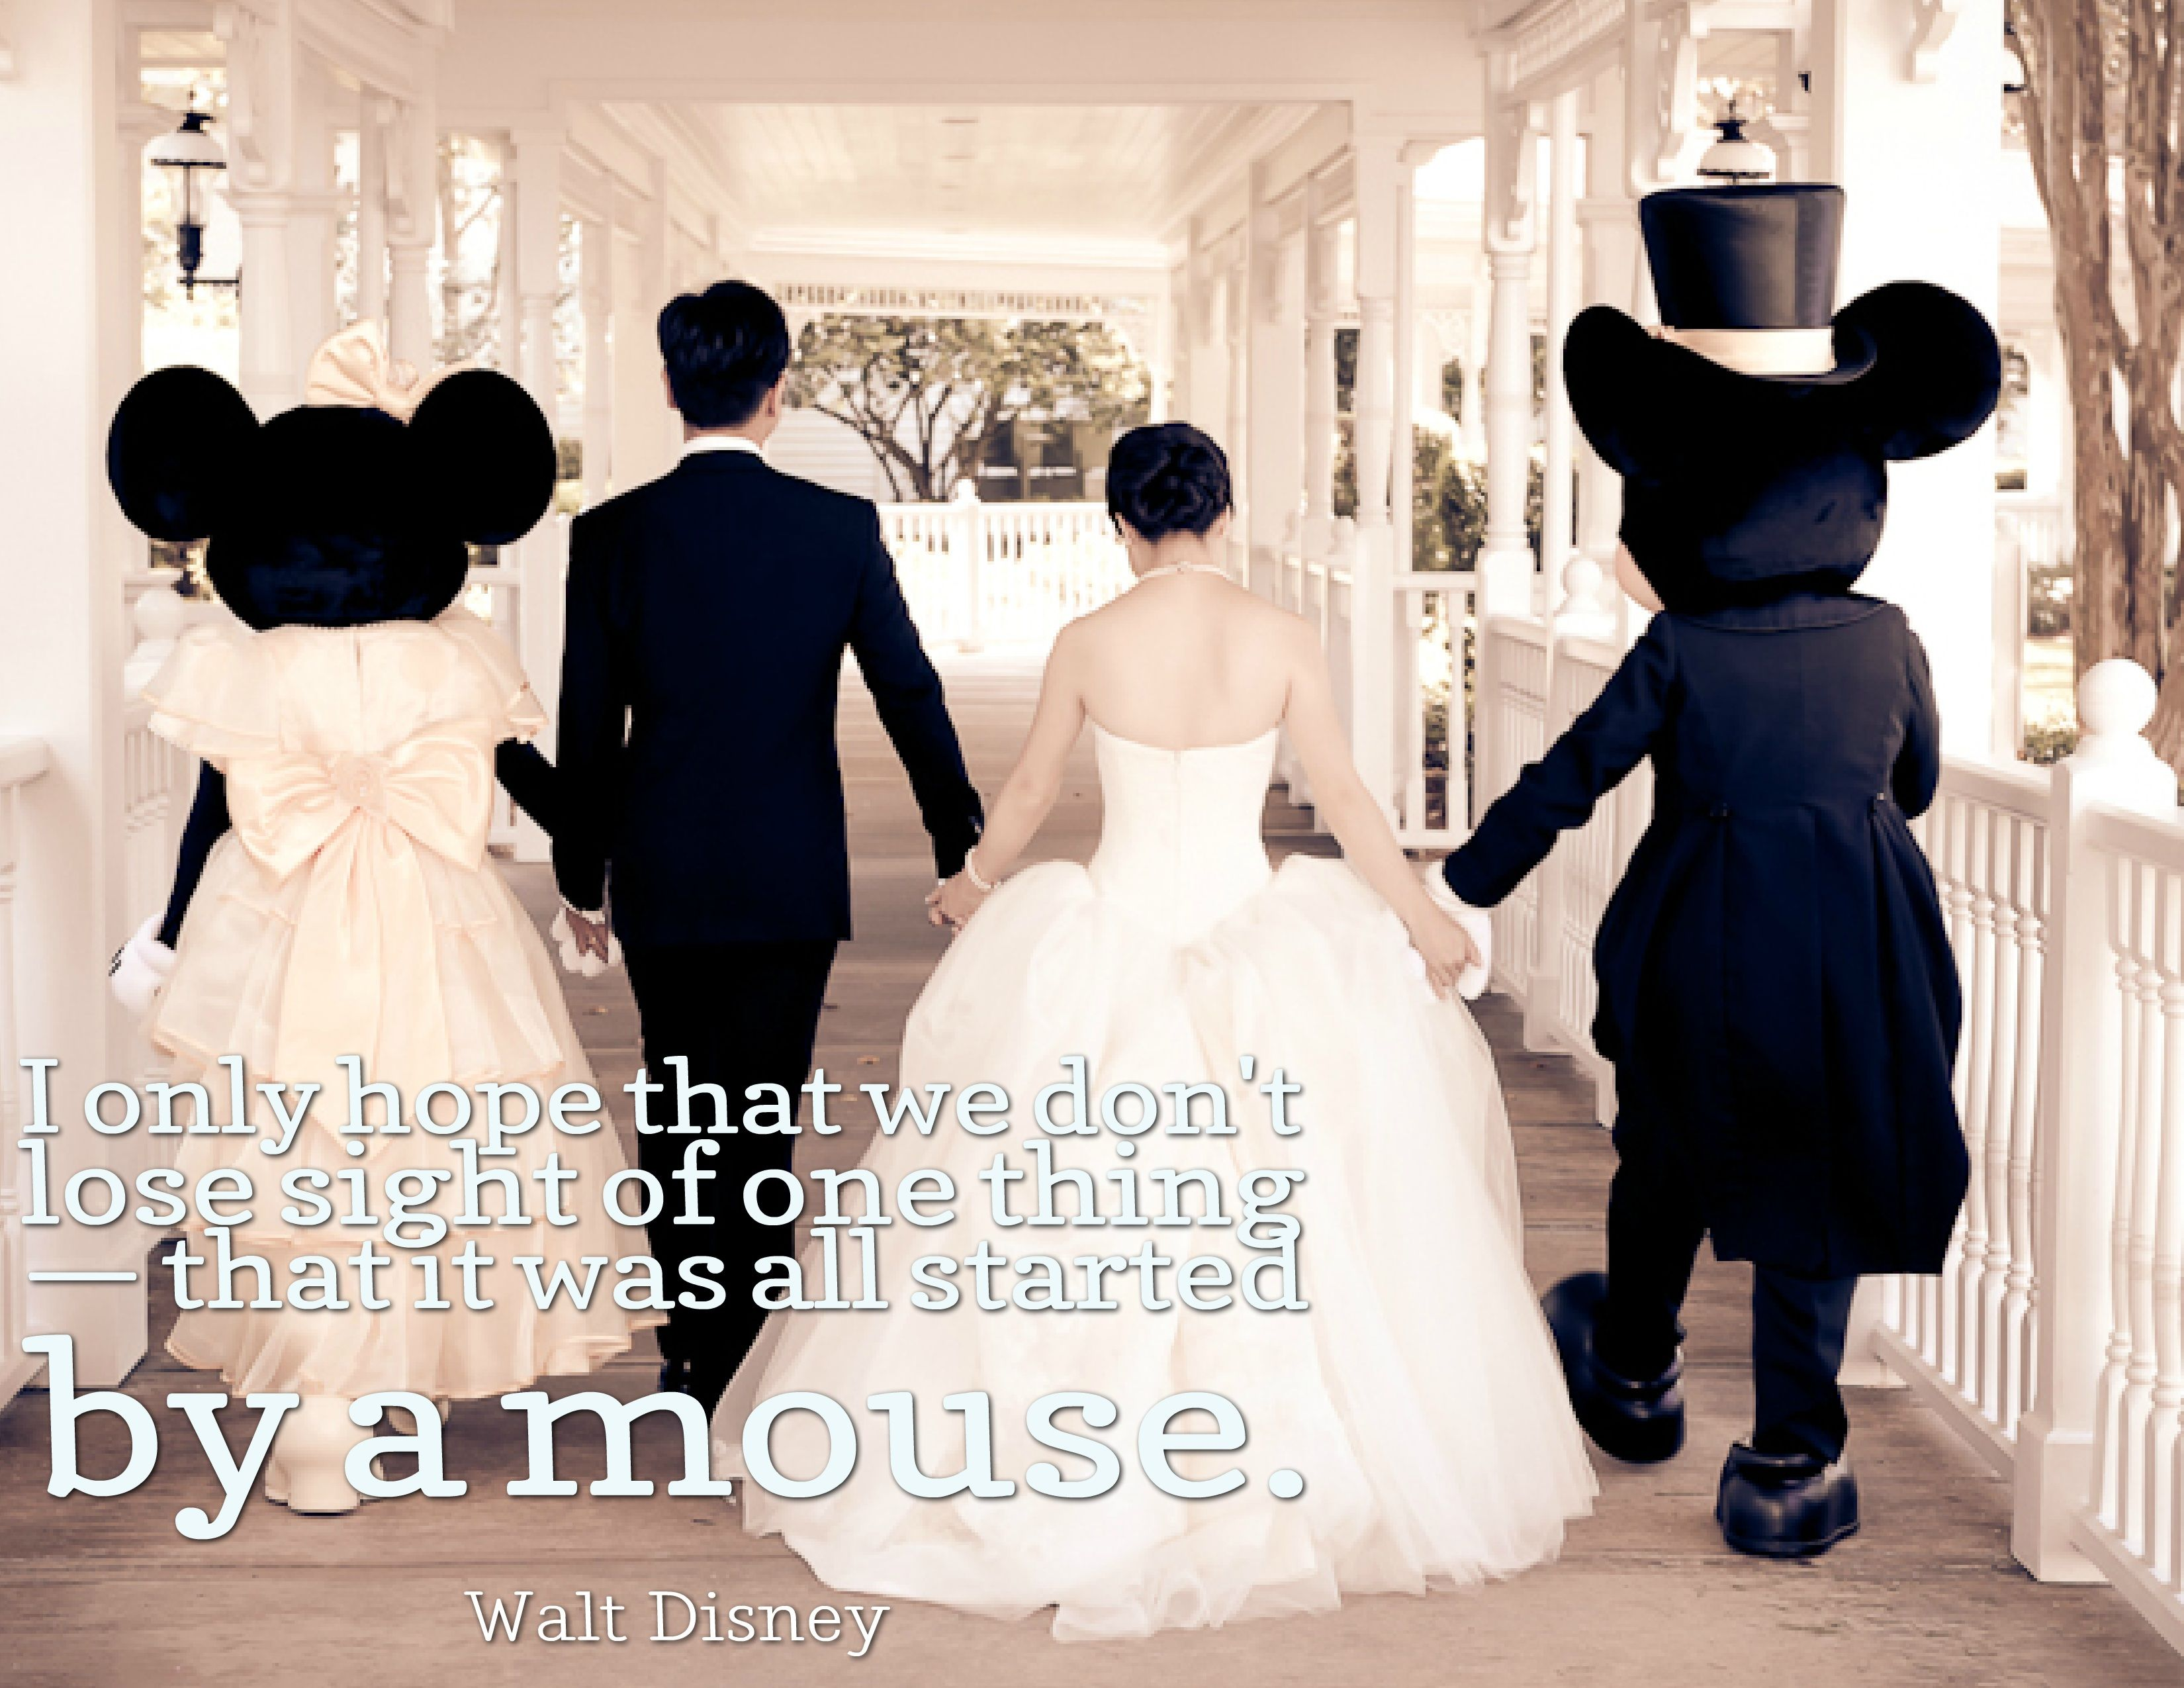 Disney Wedding Quotes I Only Hope That We Don't Lose Sight Of One Thing  That It Was